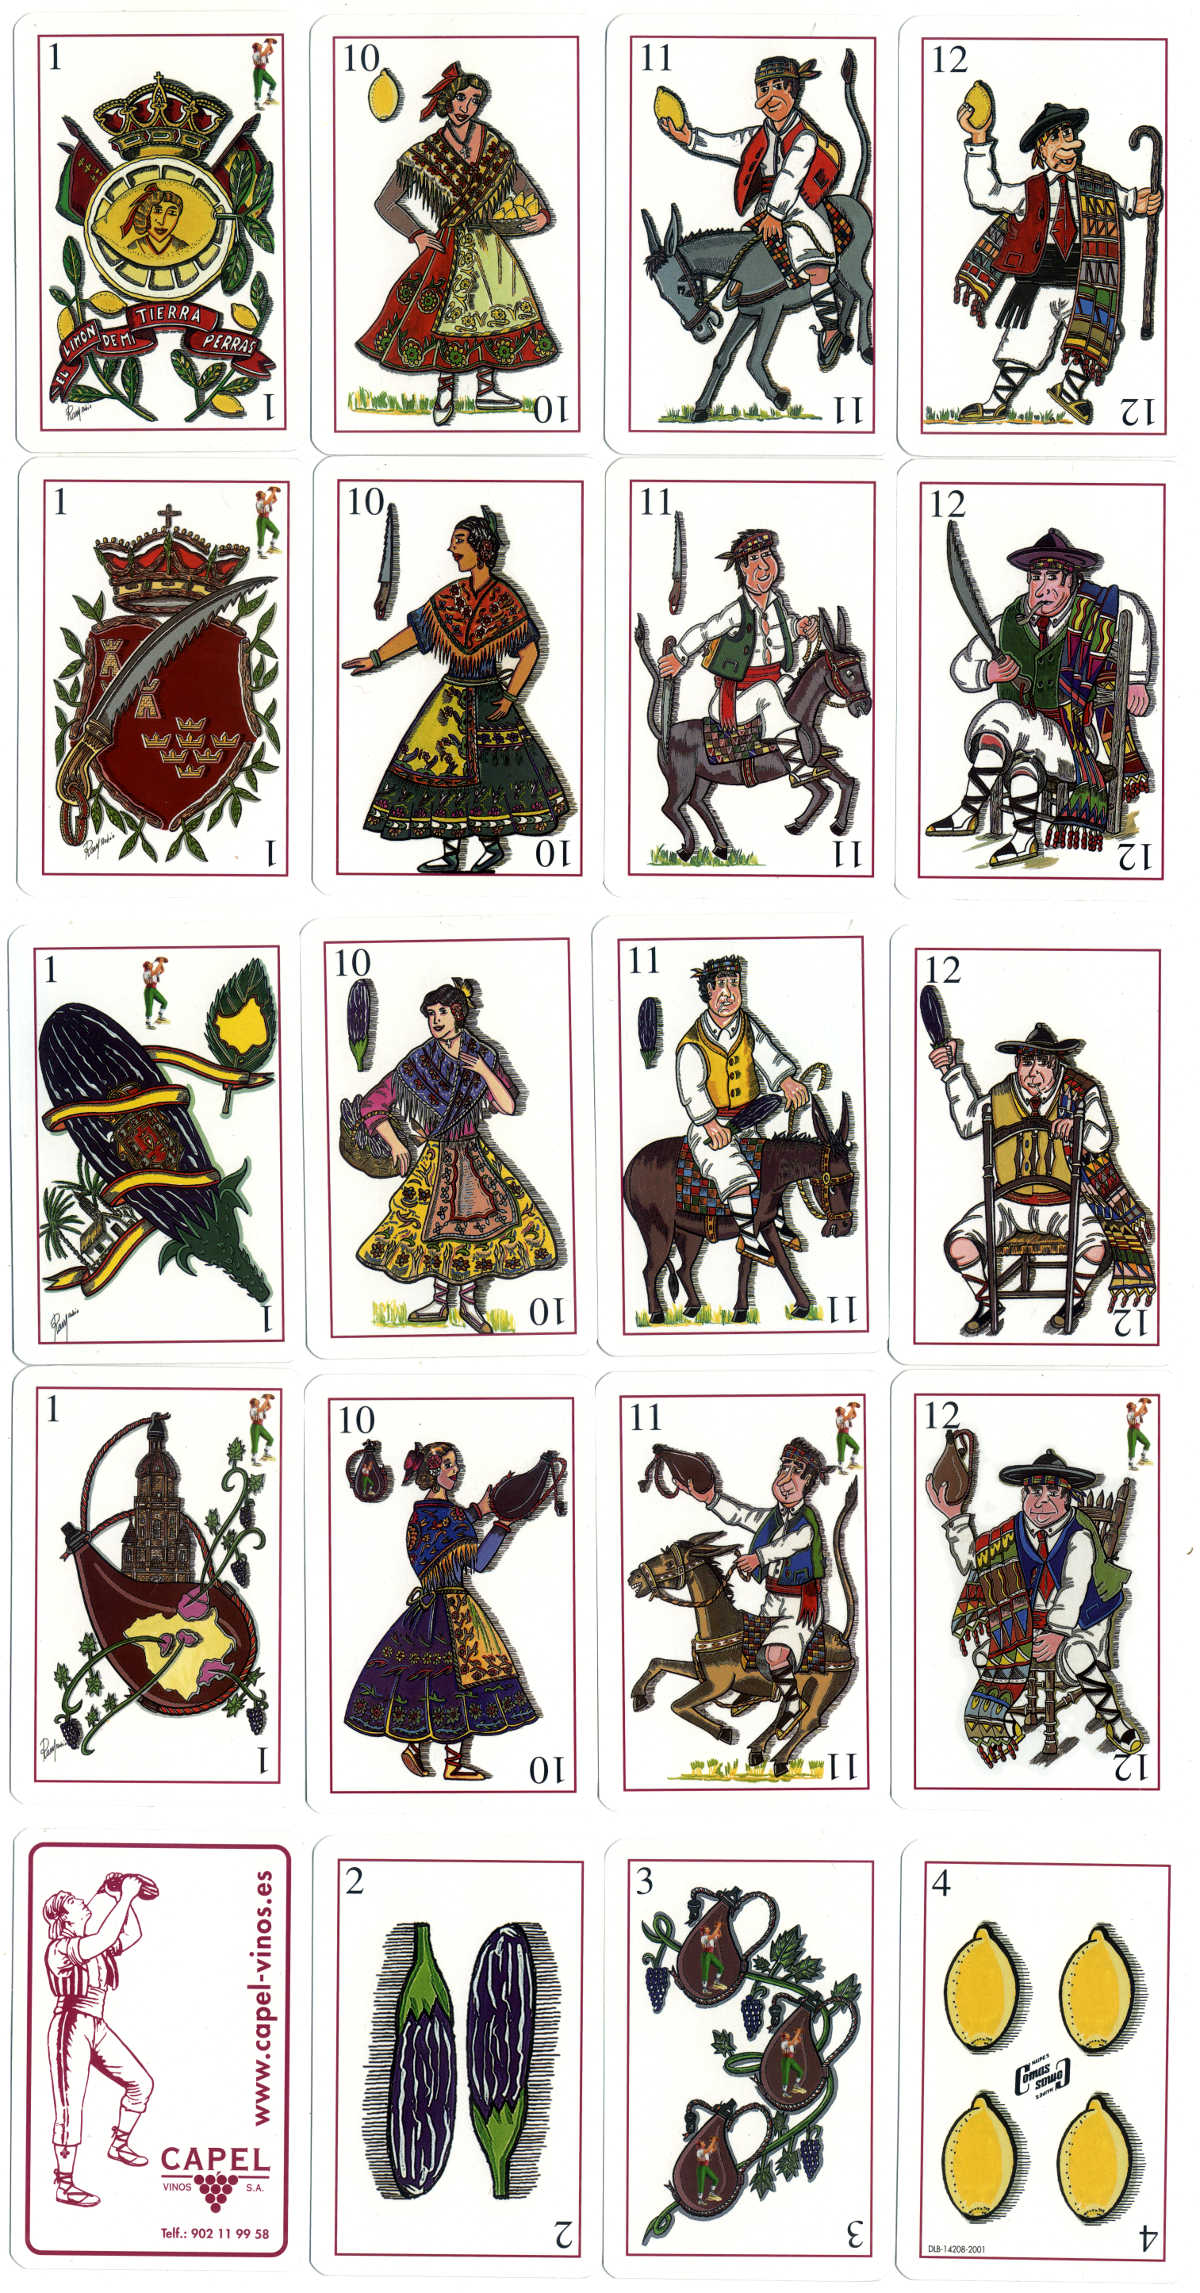 advertising playing cards for Capel Vinos S.A. (vineyards), Spain, 2001